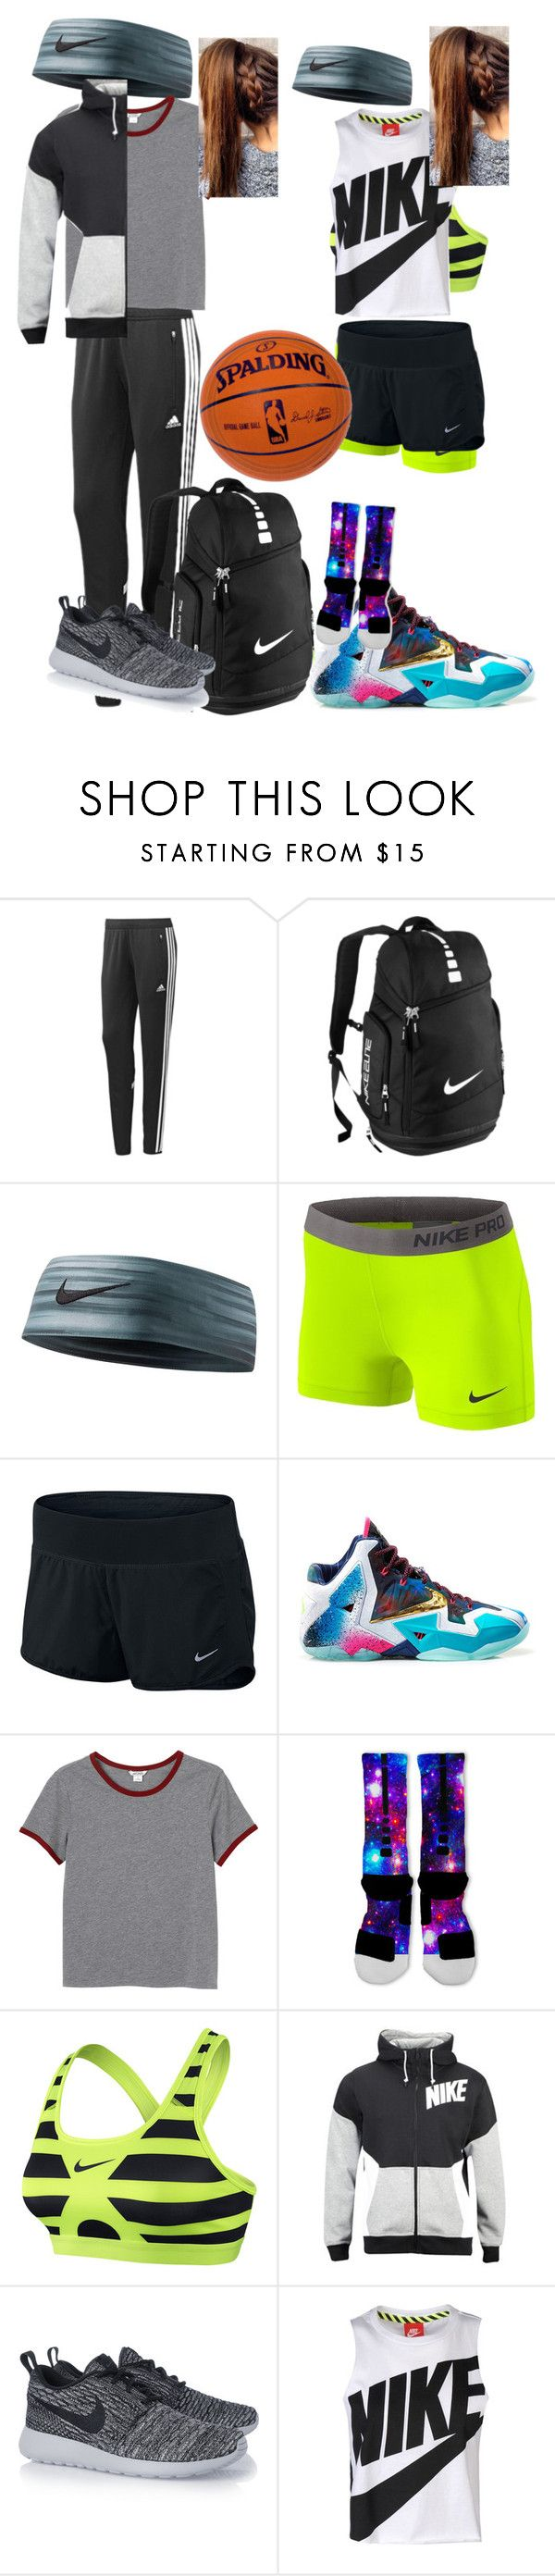 """OOTD 12/2/15 Basketball Practice After School"" by kirstinv1226 ❤ liked on Polyvore featuring adidas, NIKE and Monki"